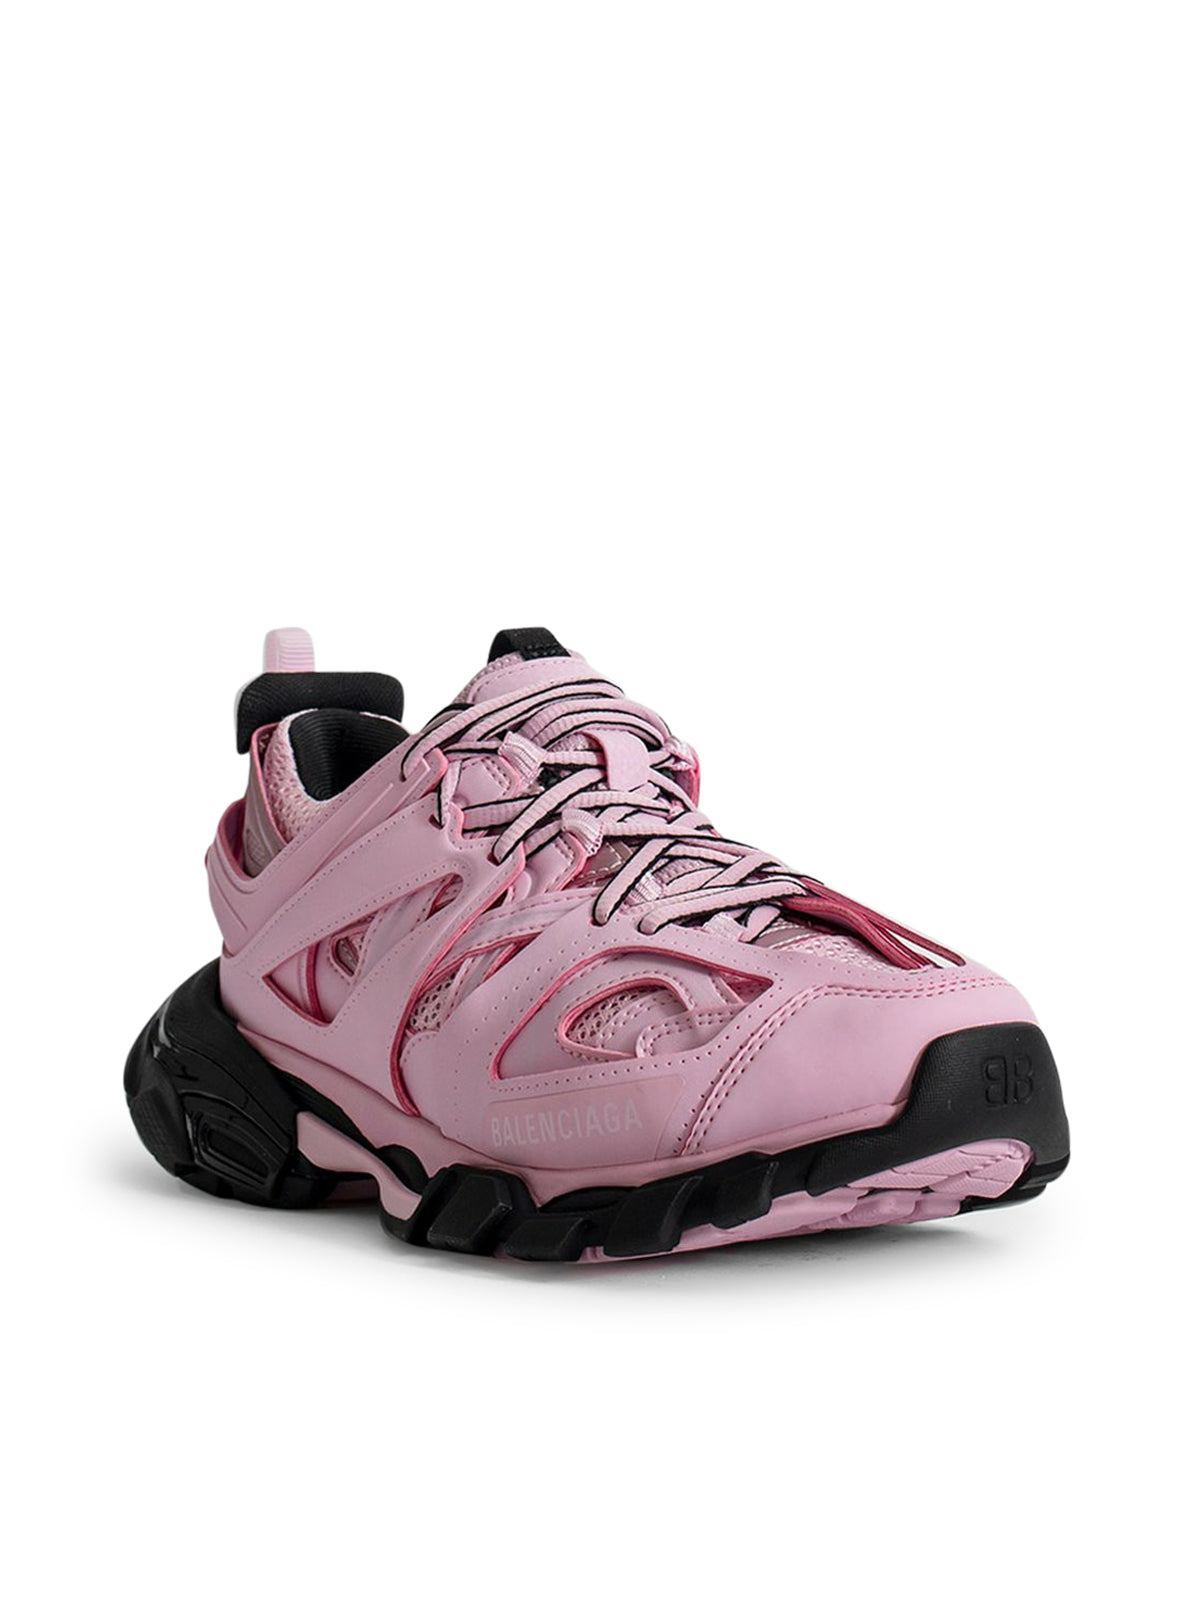 sneakers track rosa